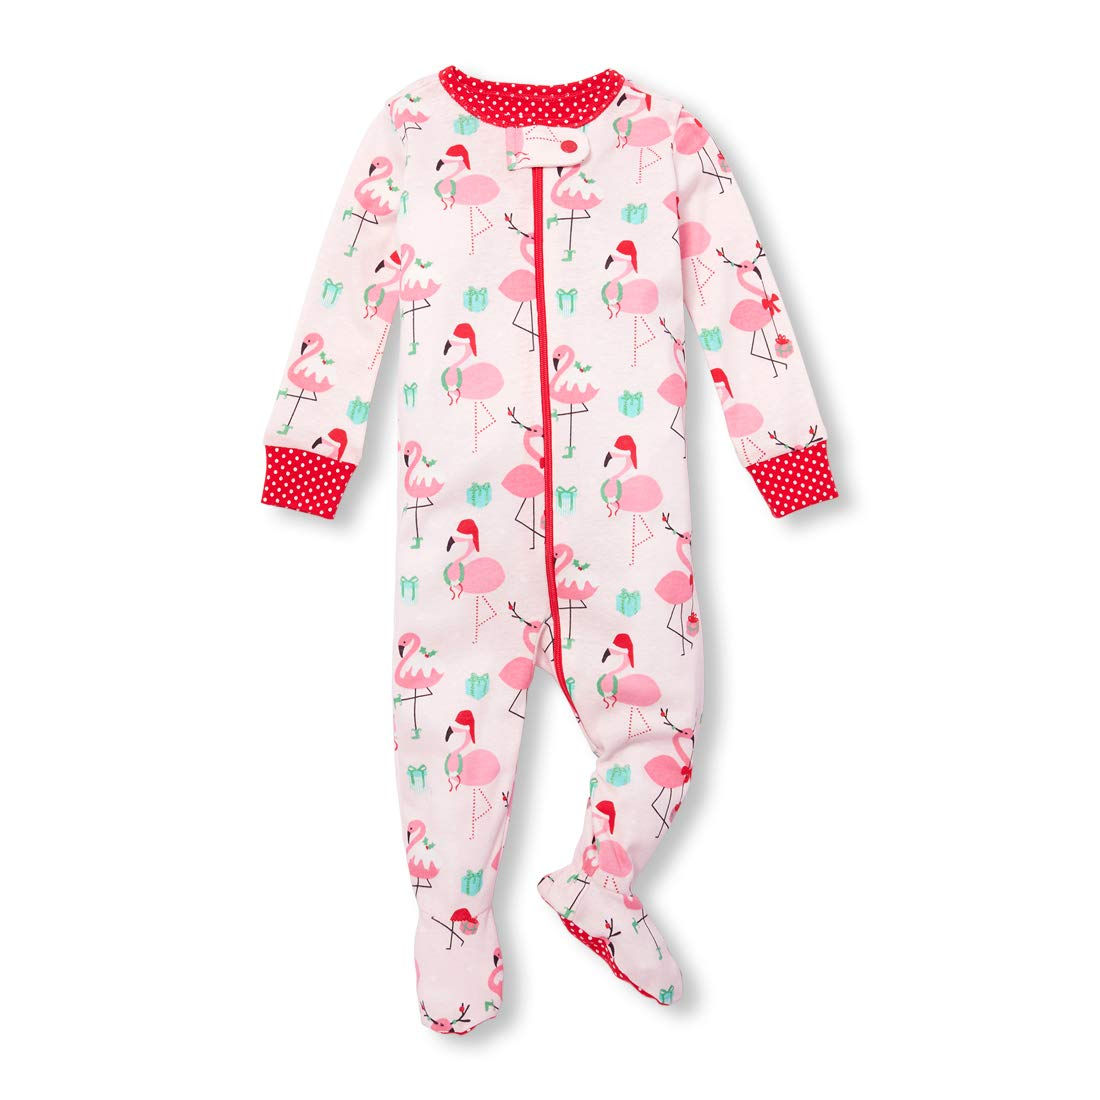 The Children's Place Girls Baby Christmas Stretchie The Children' s Place